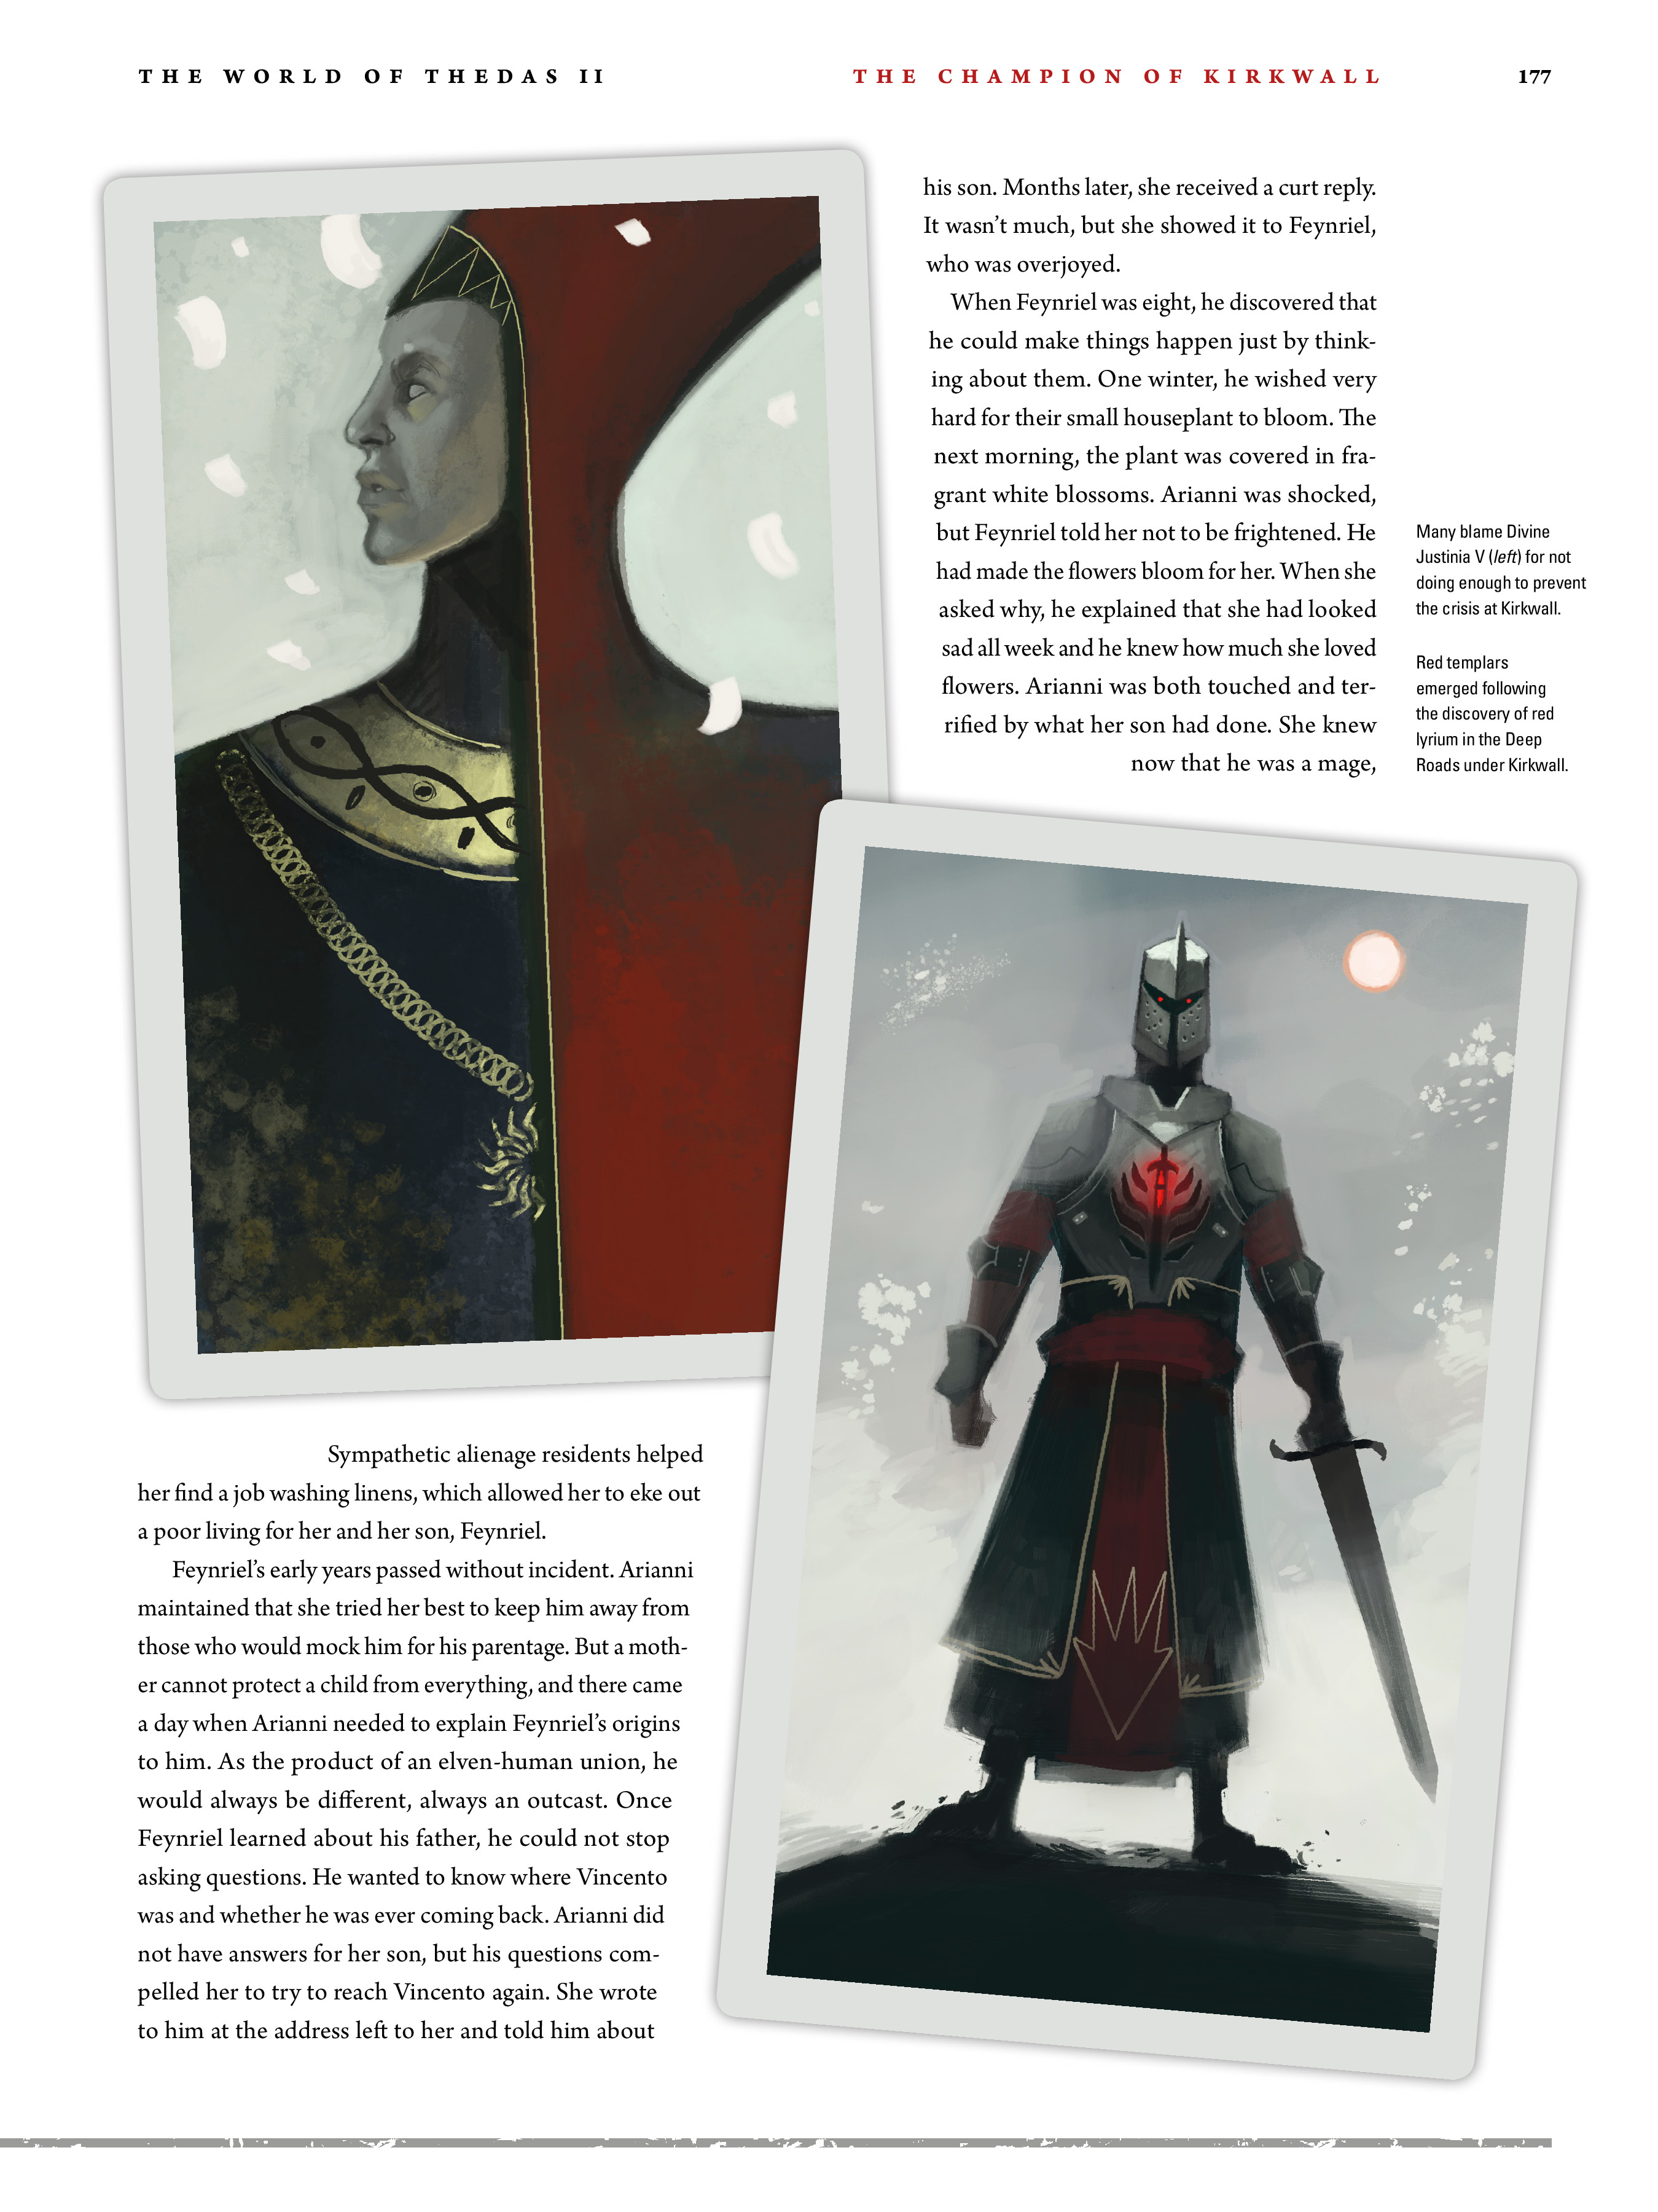 Read online Dragon Age: The World of Thedas comic -  Issue # TPB 2 - 172